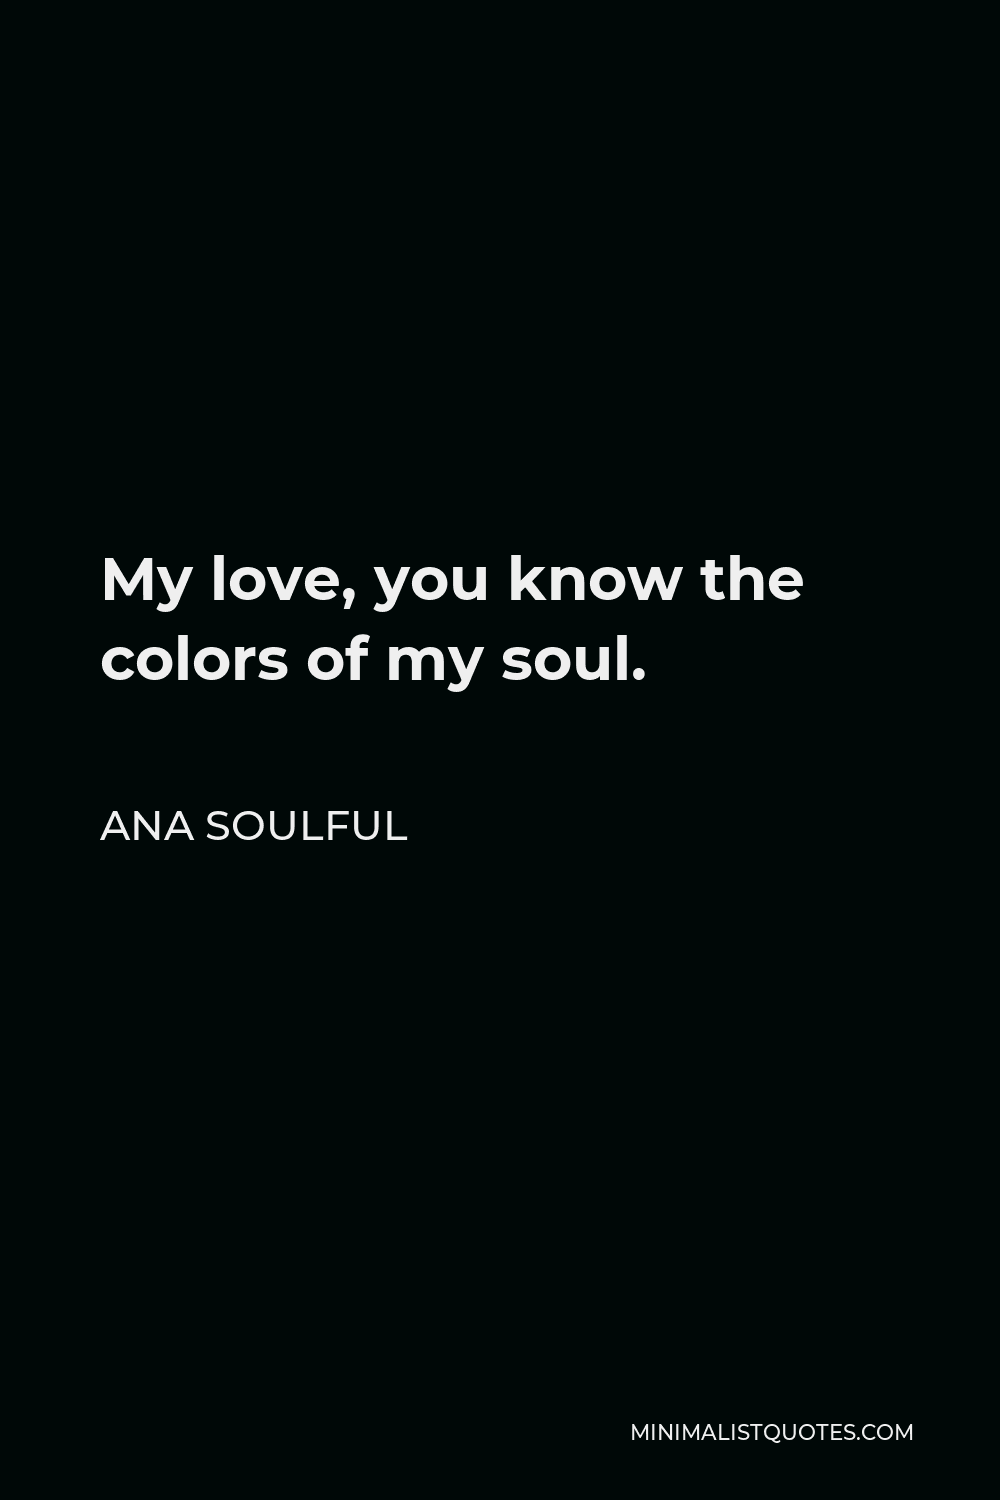 Ana Soulful Quote - My love, you know the colors of my soul.